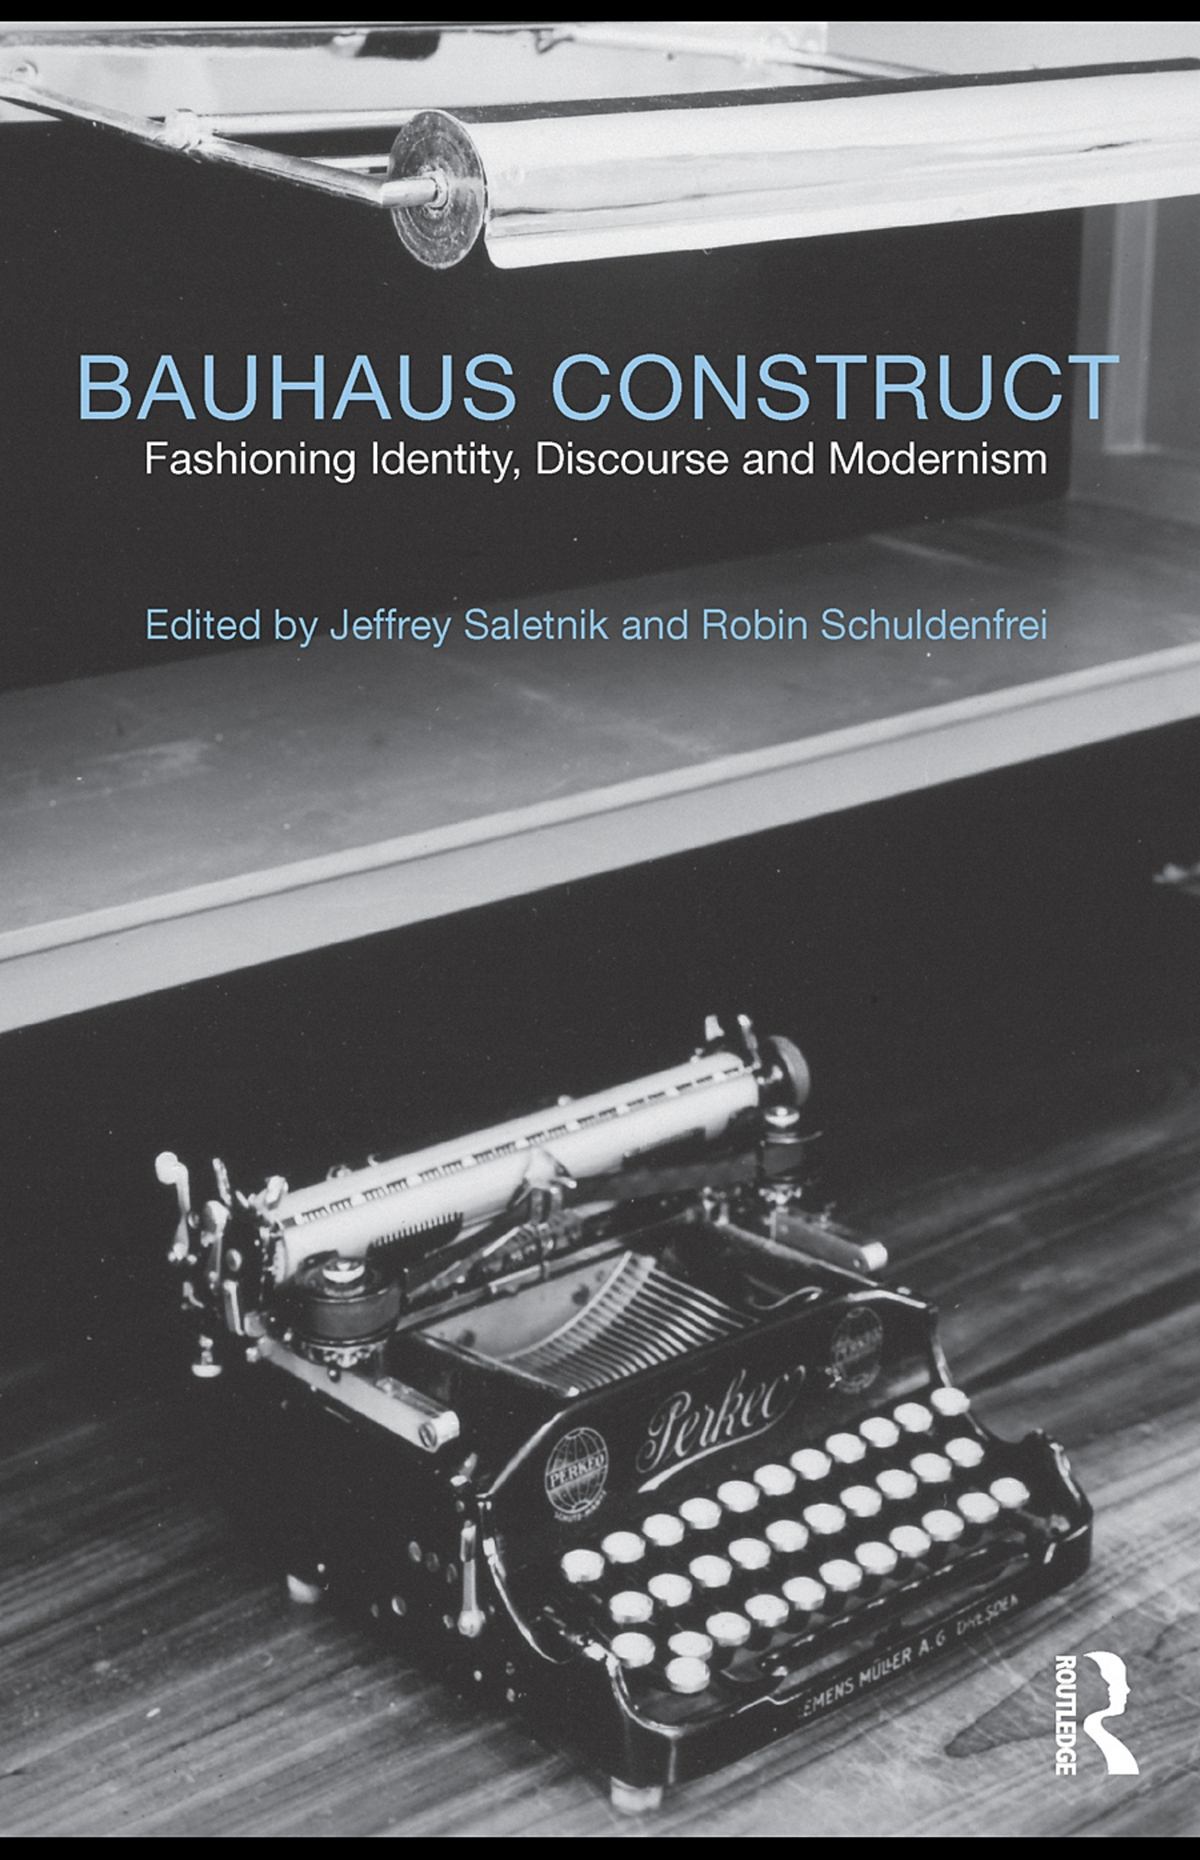 Bauhaus Construct : Fashioning Identity, Discourse and Modernism / Edited by Jeffrey Saletnik and Robin Schuldenfrei. — First published 2009 by Routledge. — London ; New York : Routledge, 2010